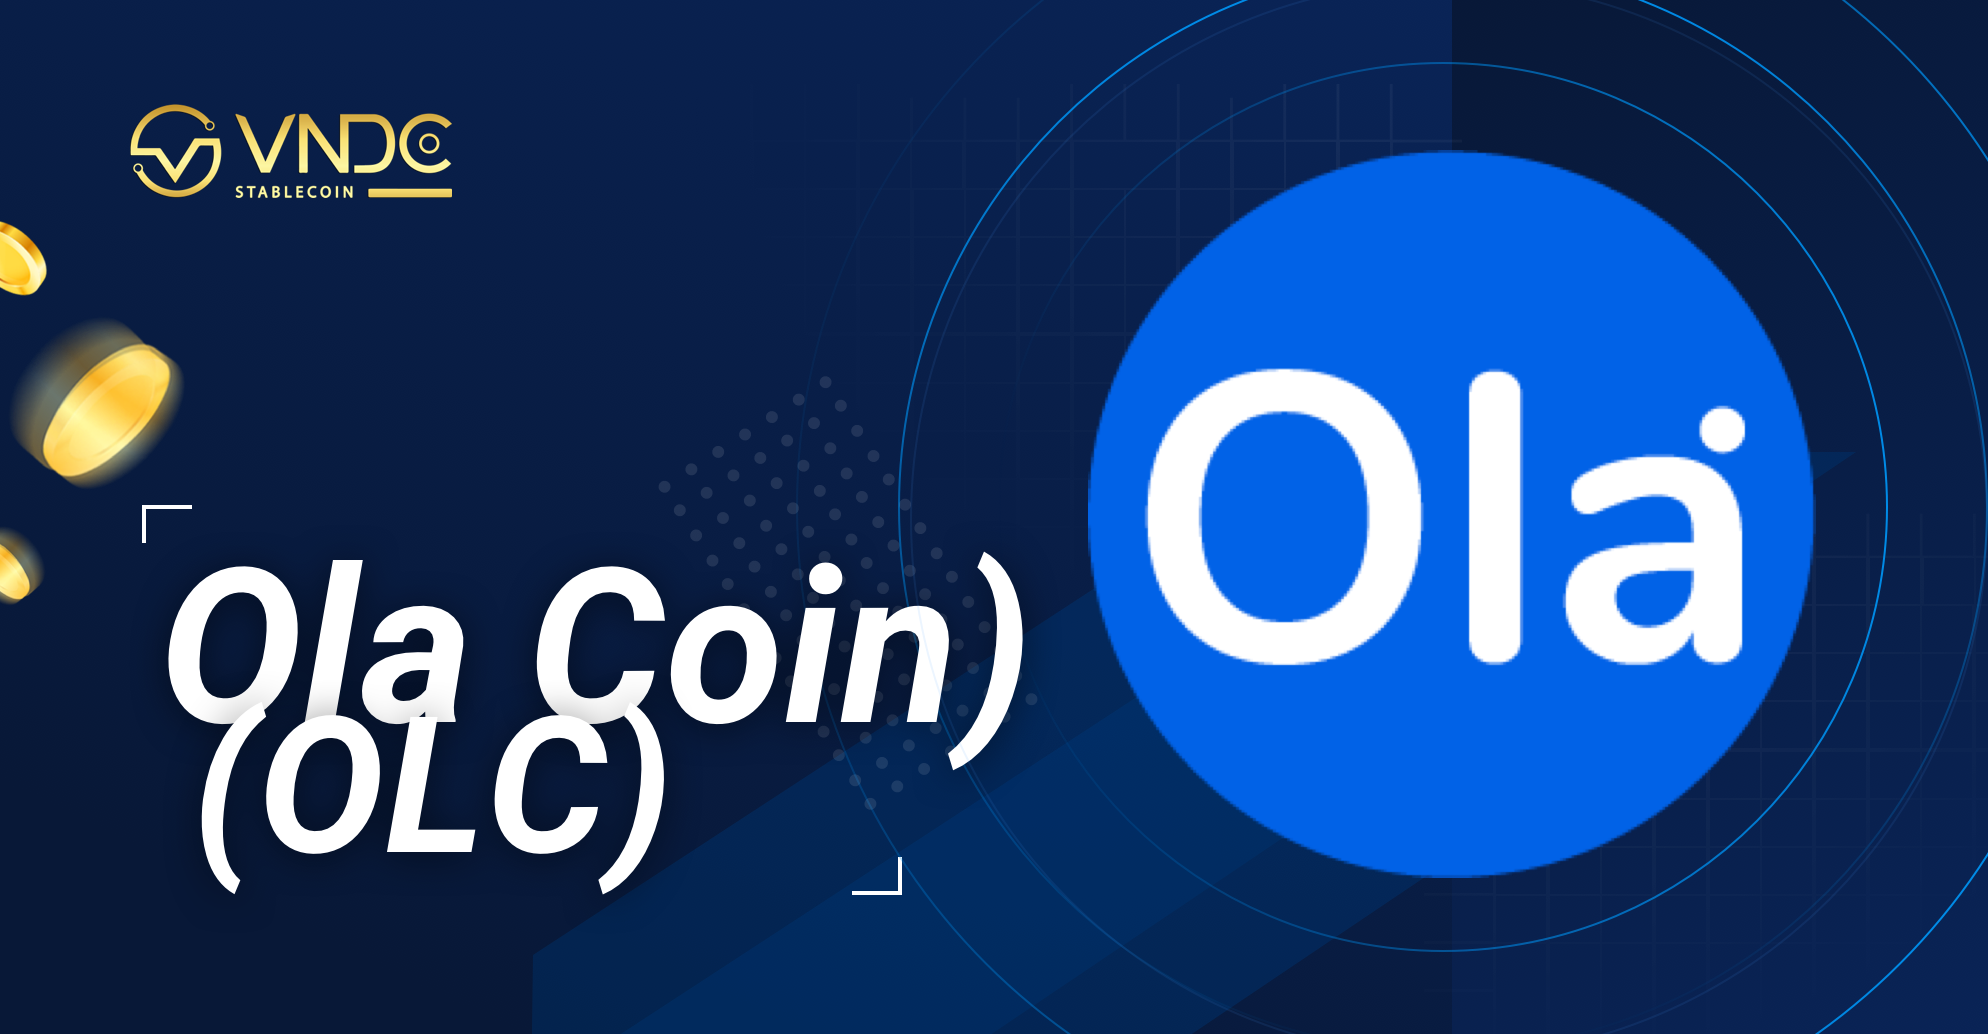 OLC (Ola Coin) is officially listed on VNDC Wallet